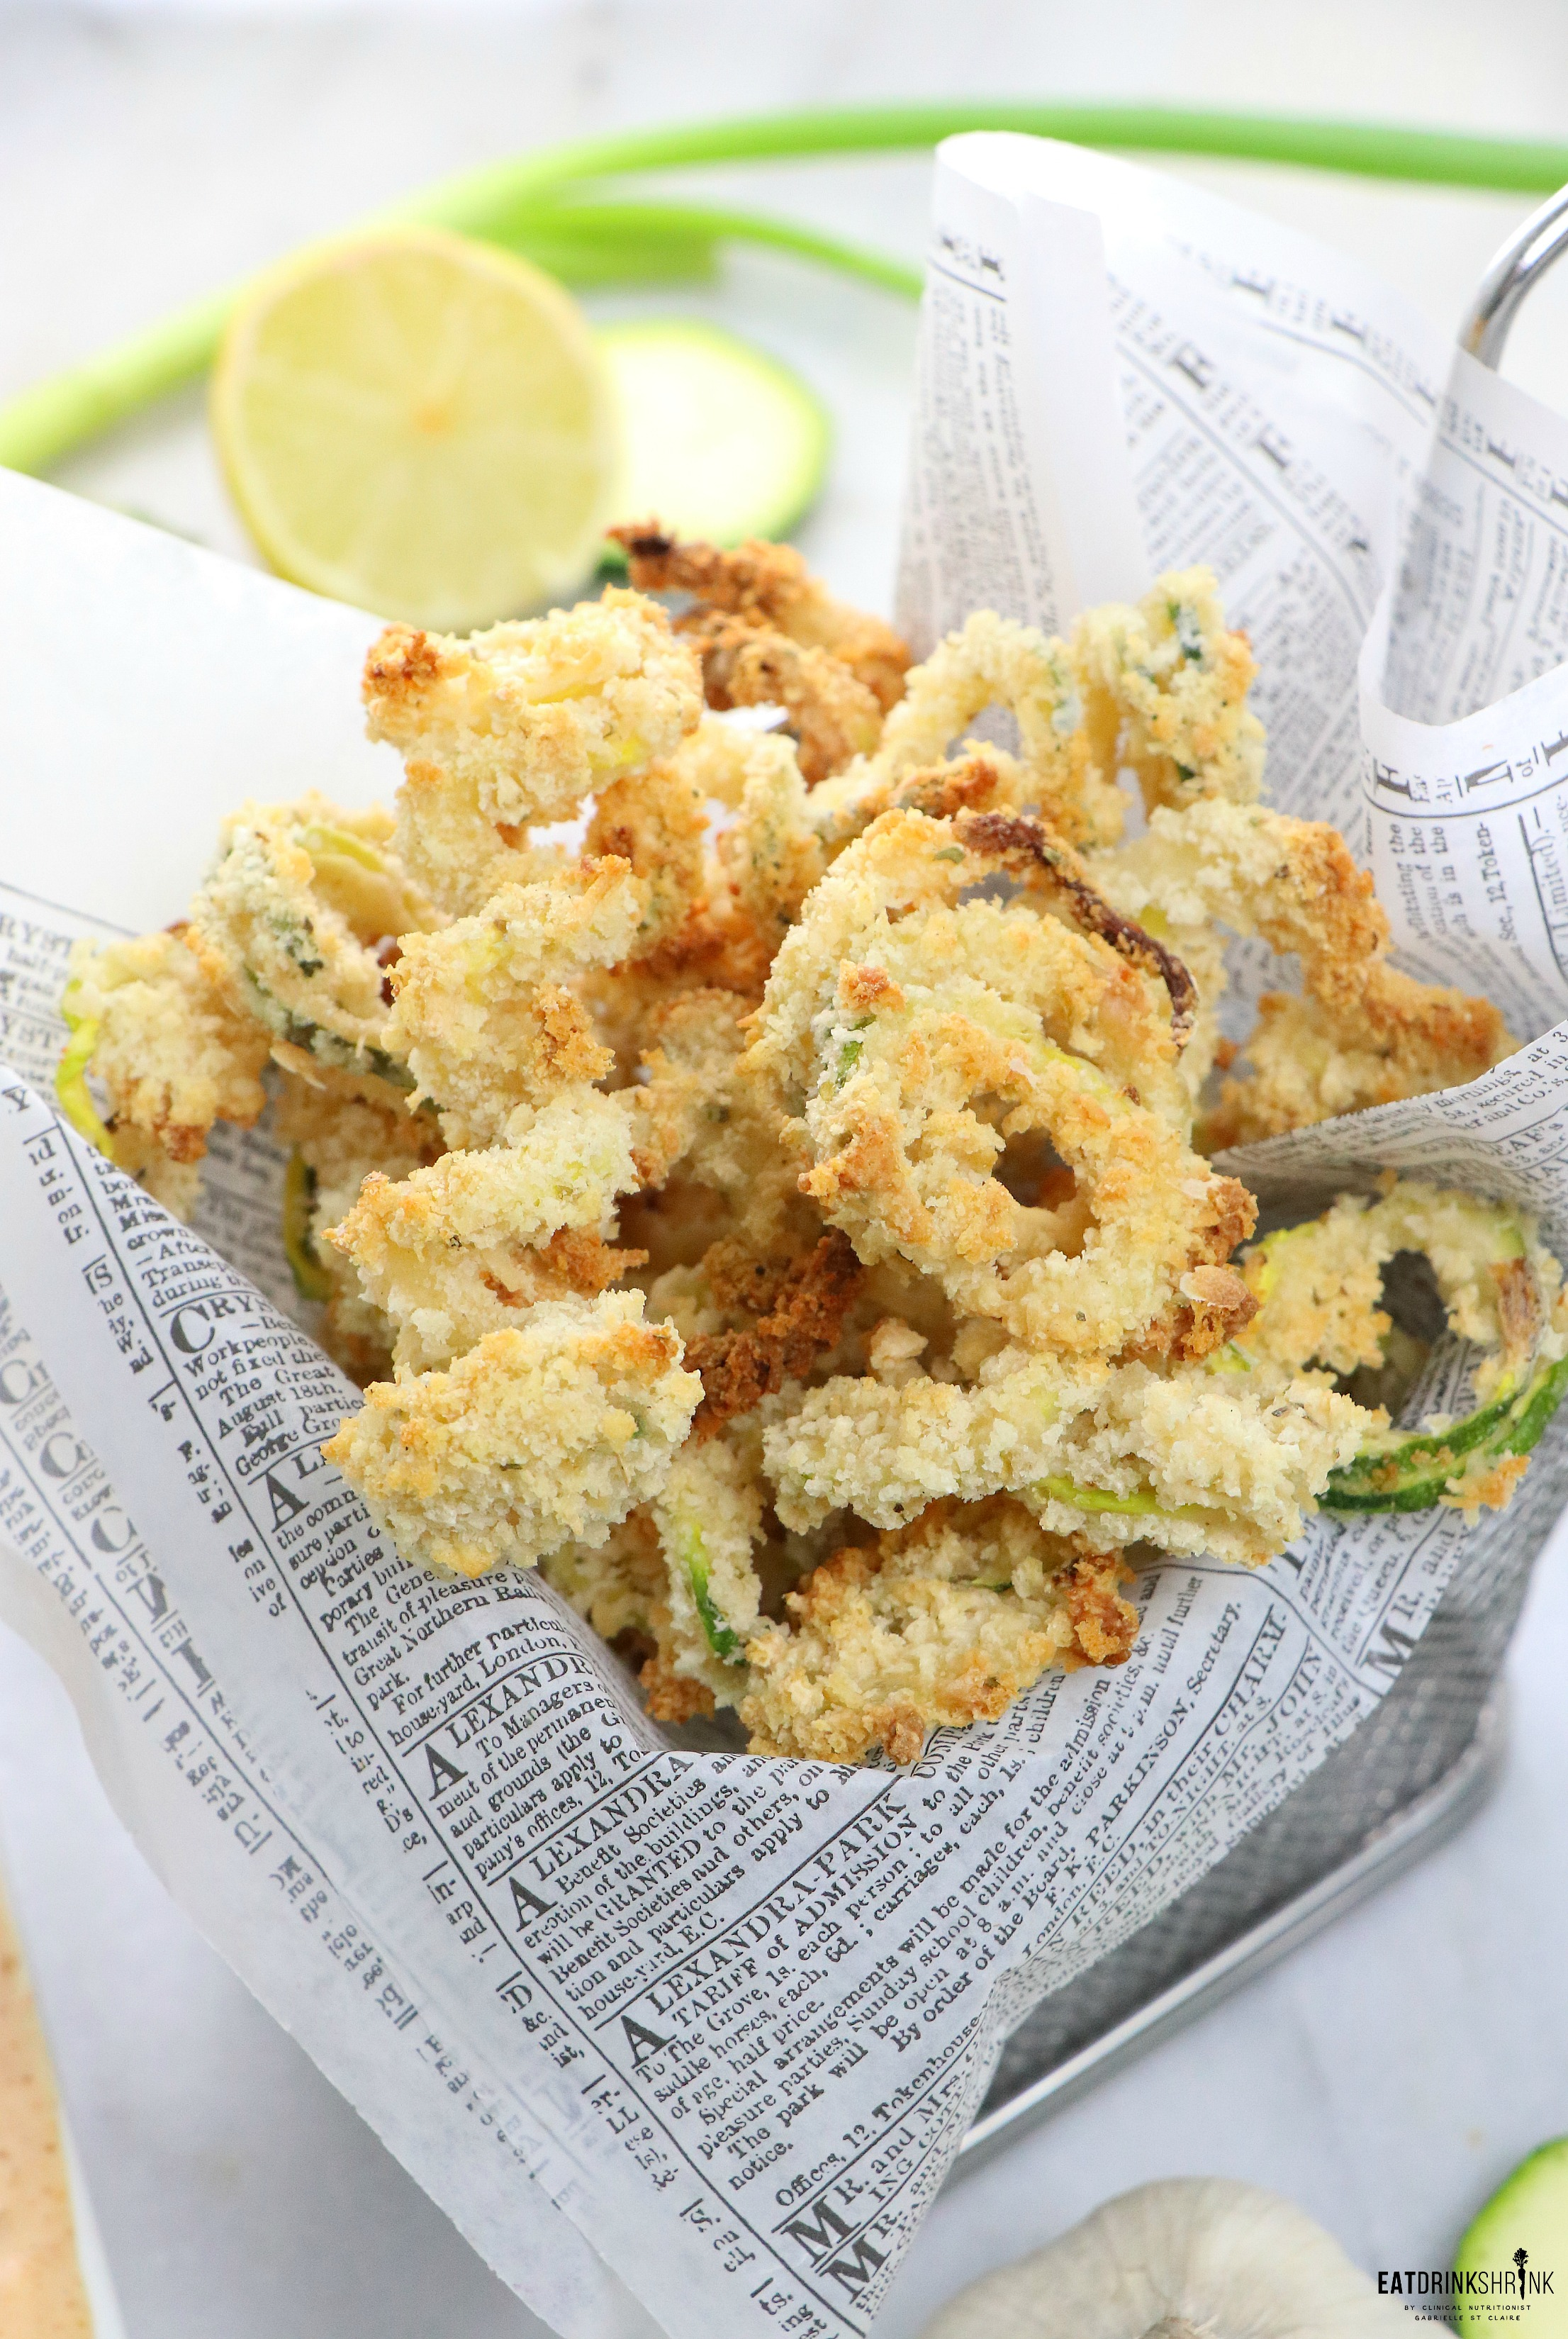 Vegan Baked Zucchini Fries with Remoulade Sauce